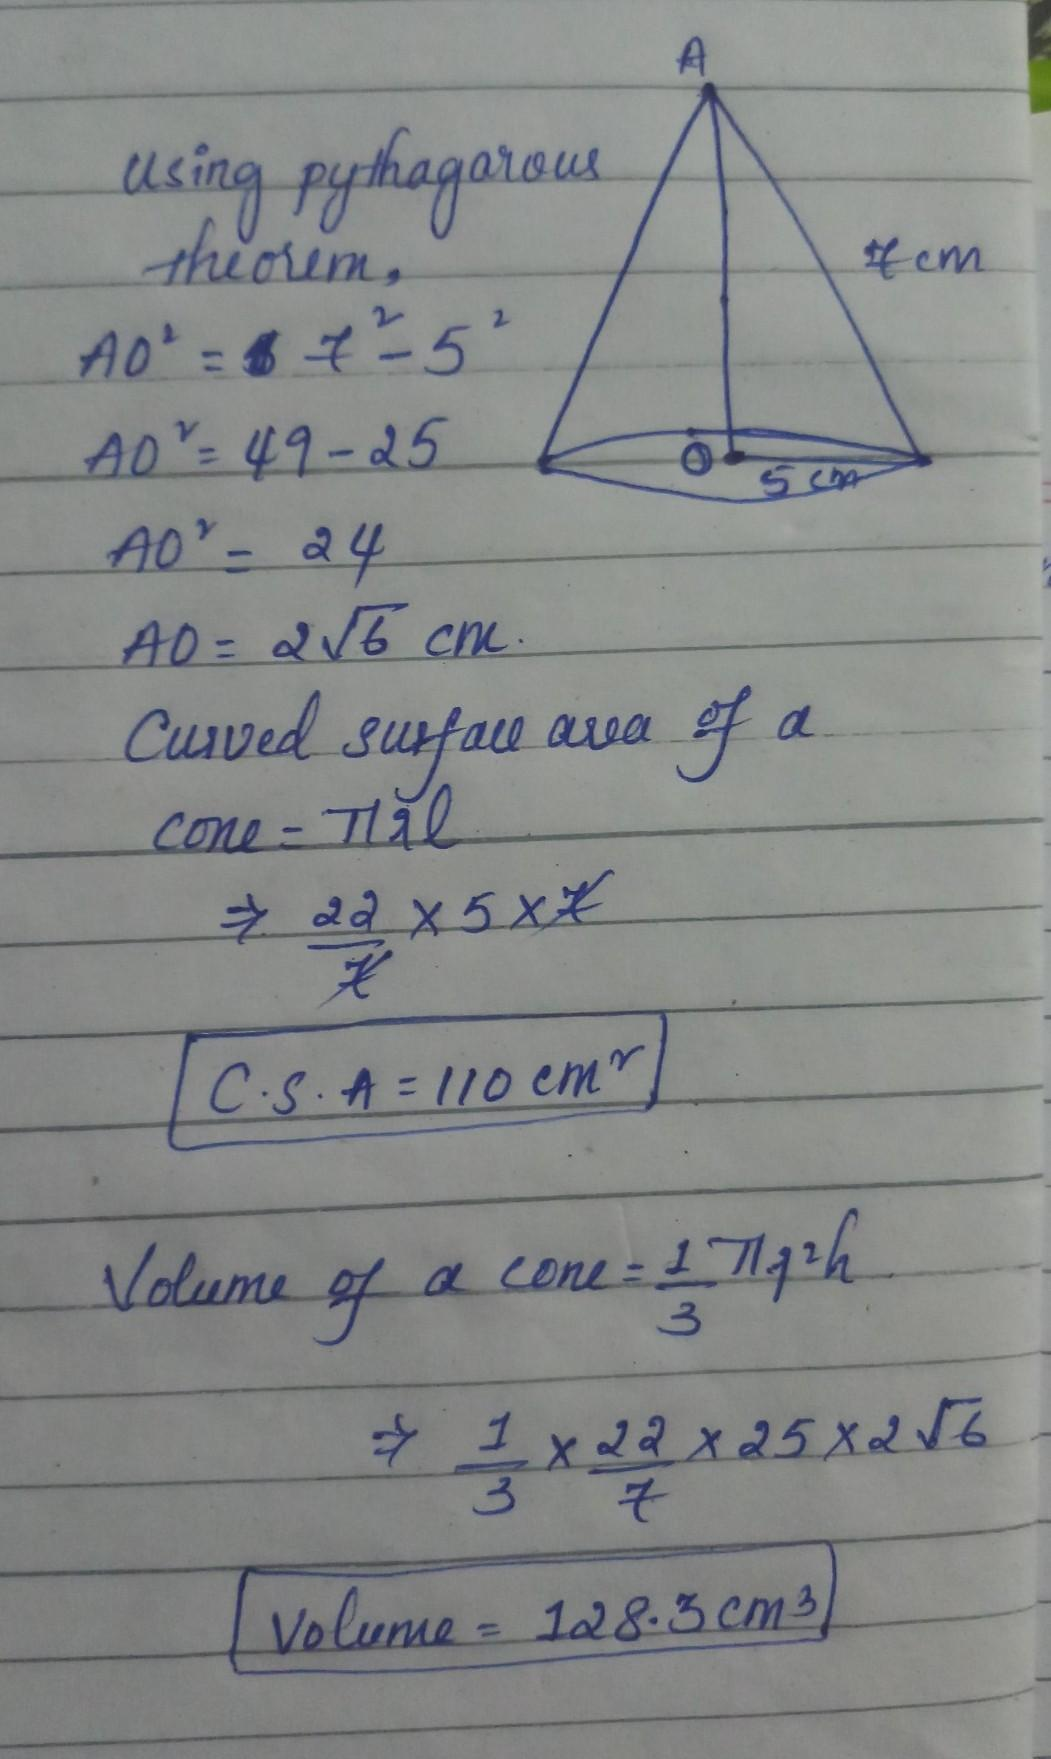 Find The Volume And Curved Surface Area Of A Cone Whose